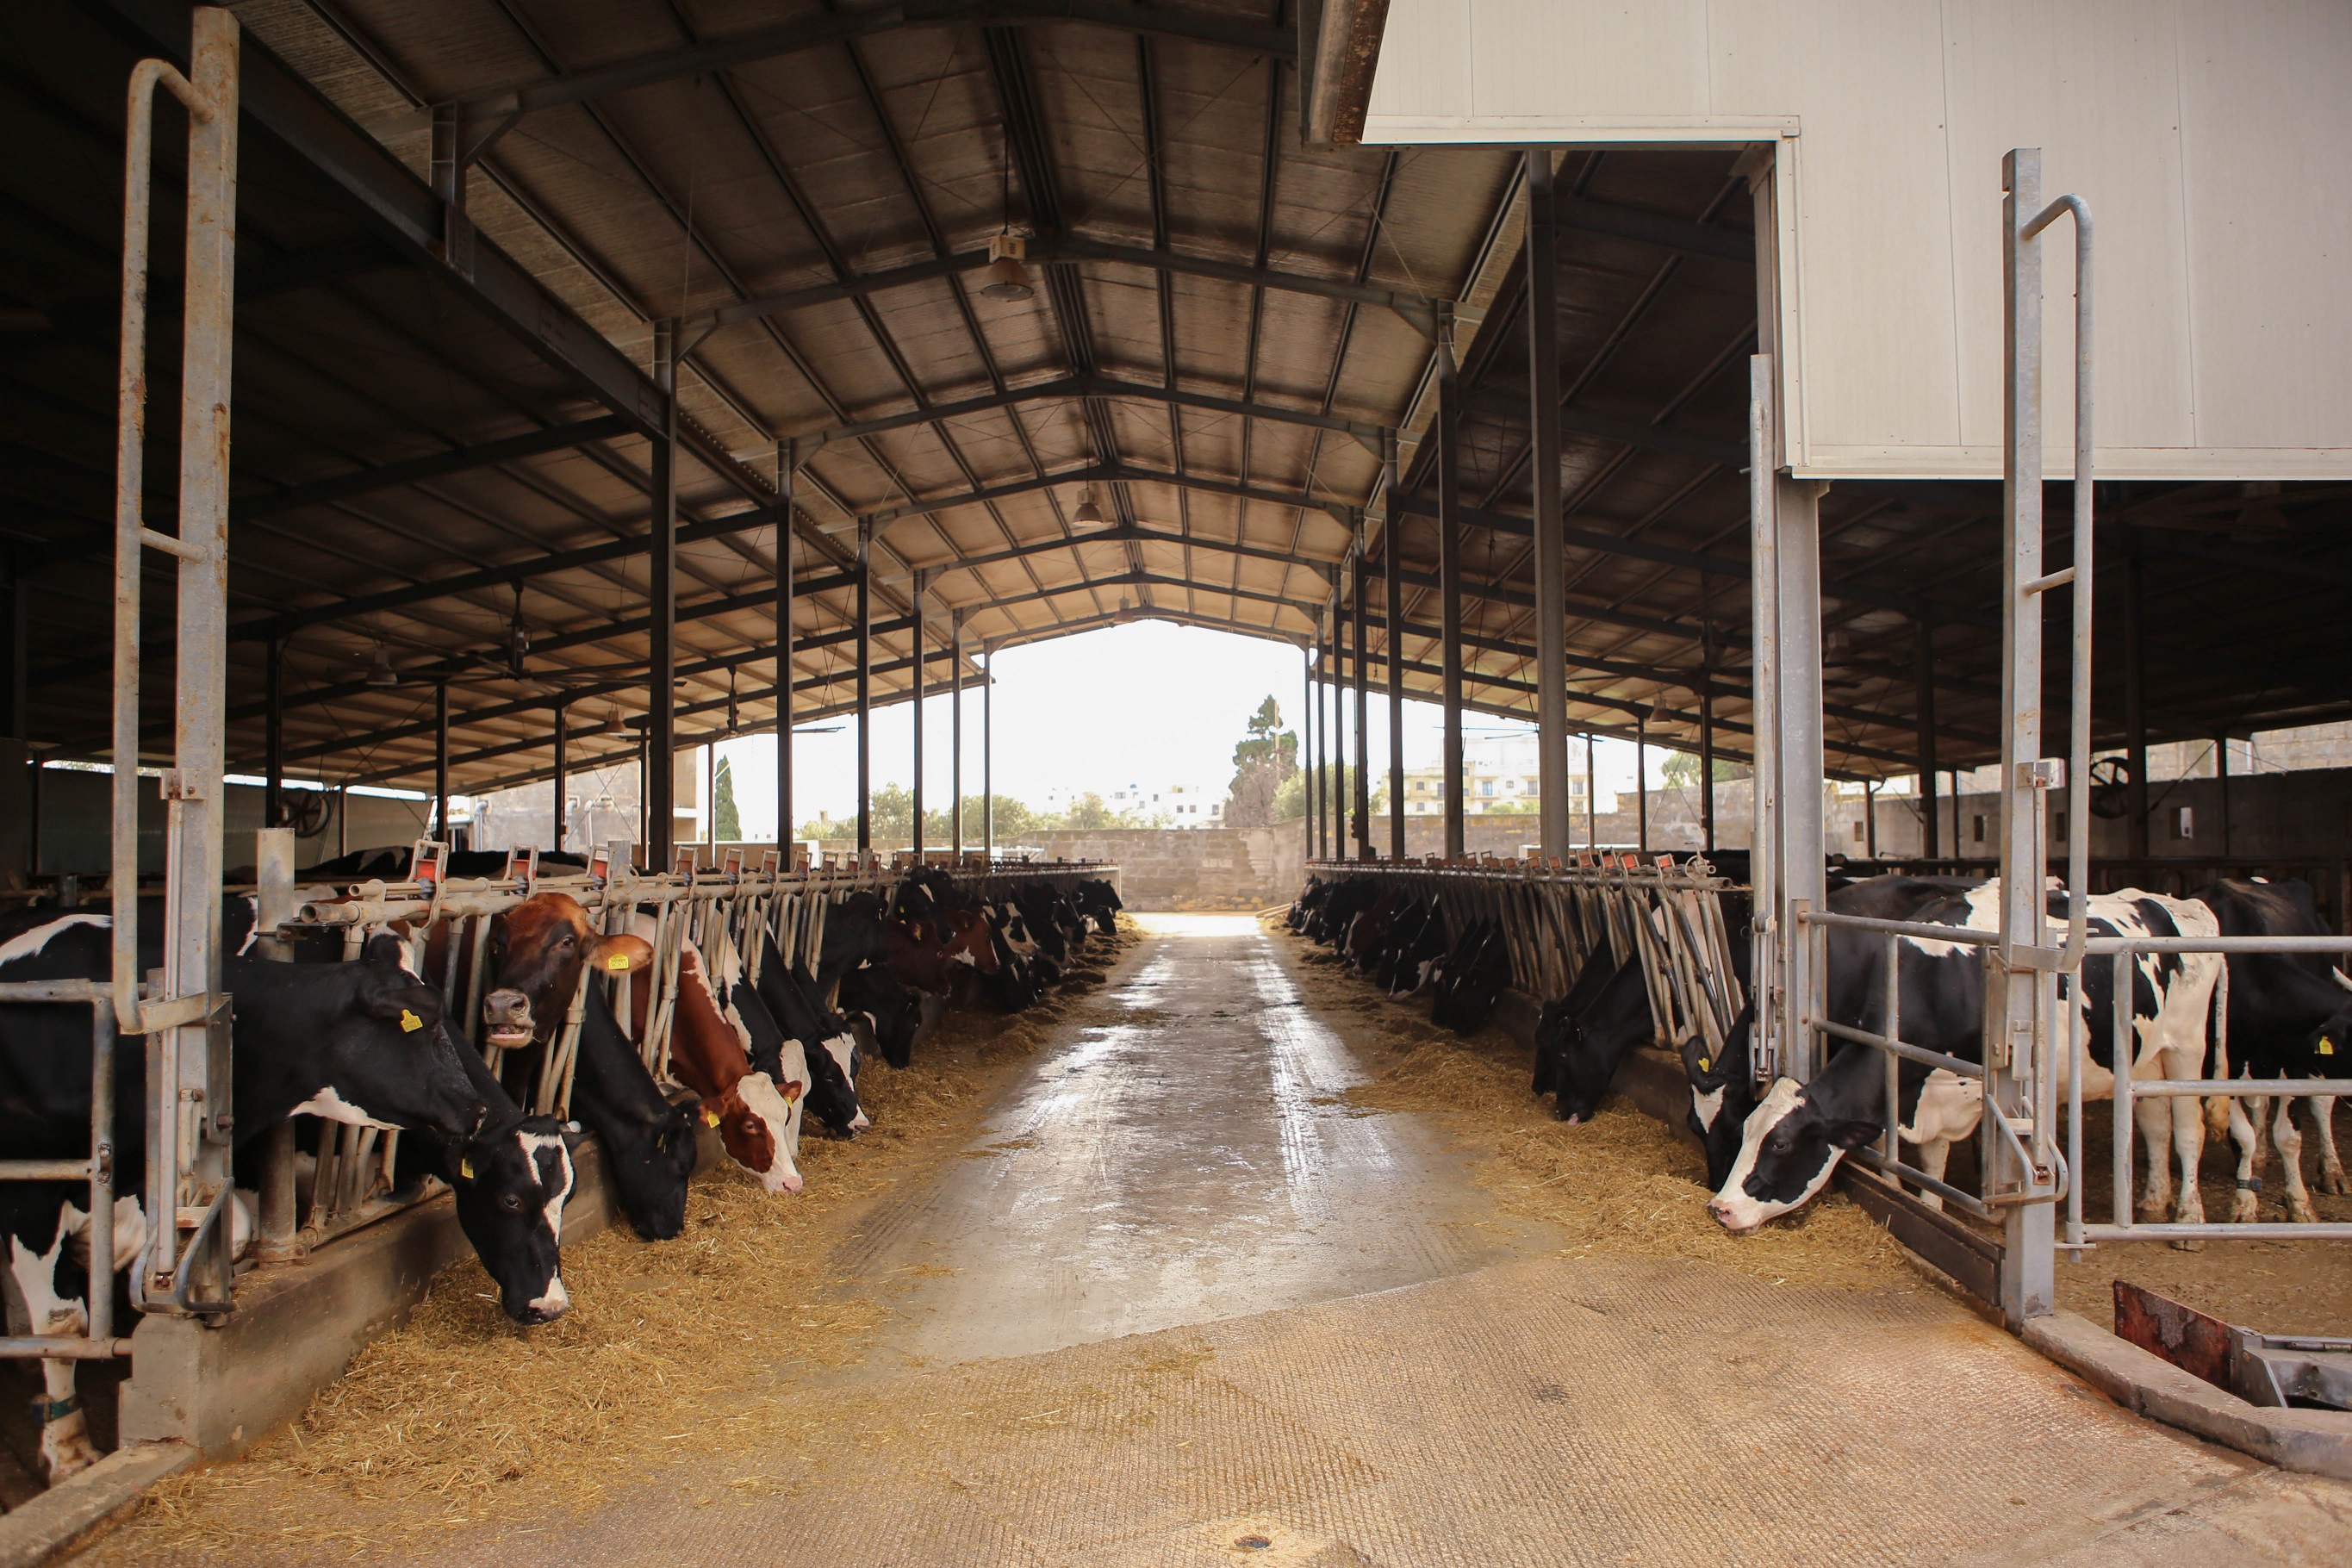 A cow shed with all the cows are aligned and eating